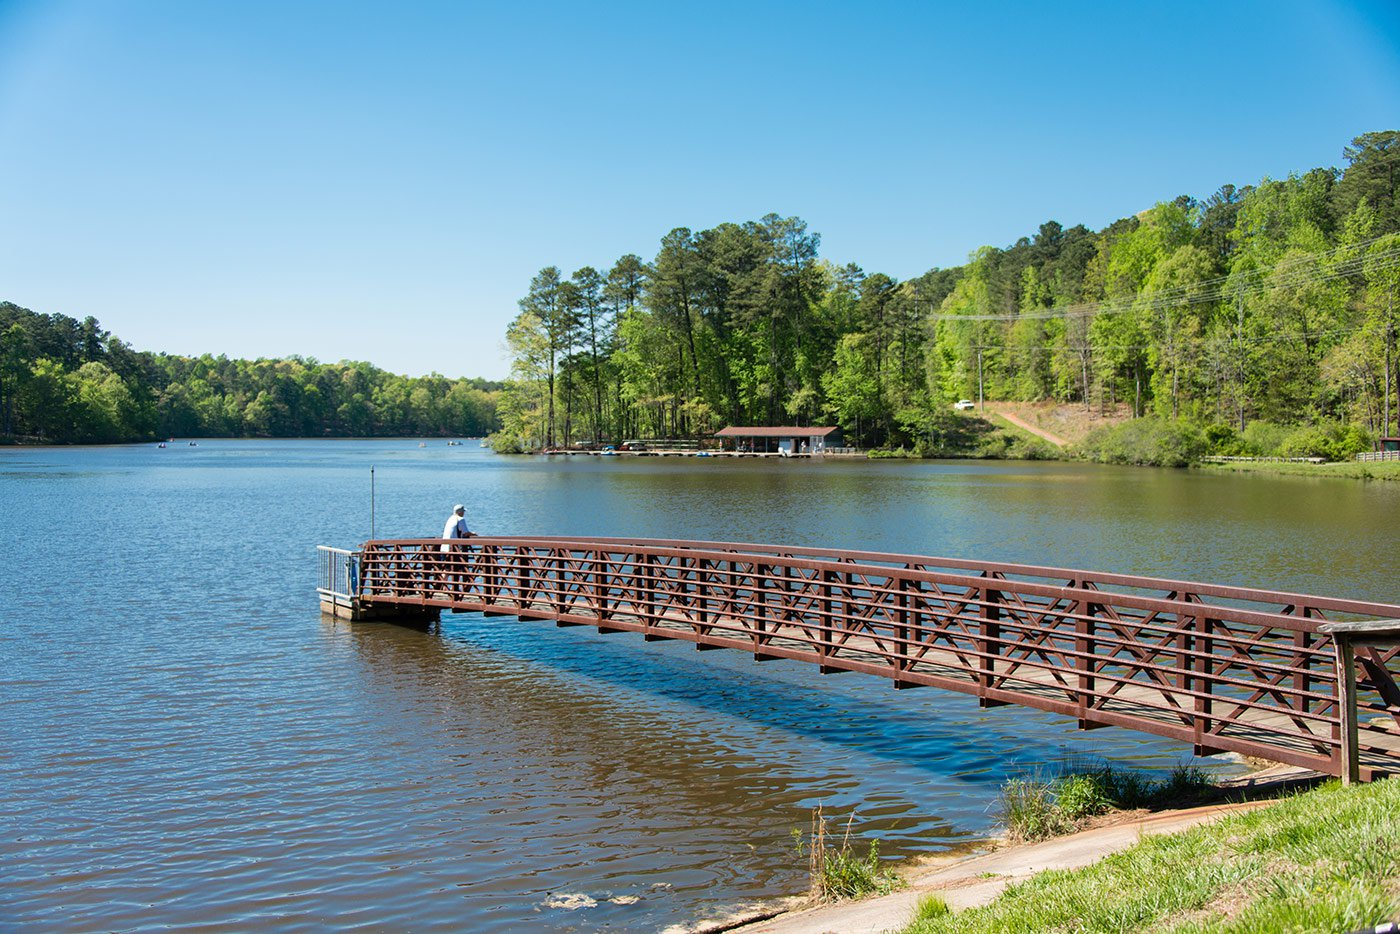 Bridge and lake at Umstead Park